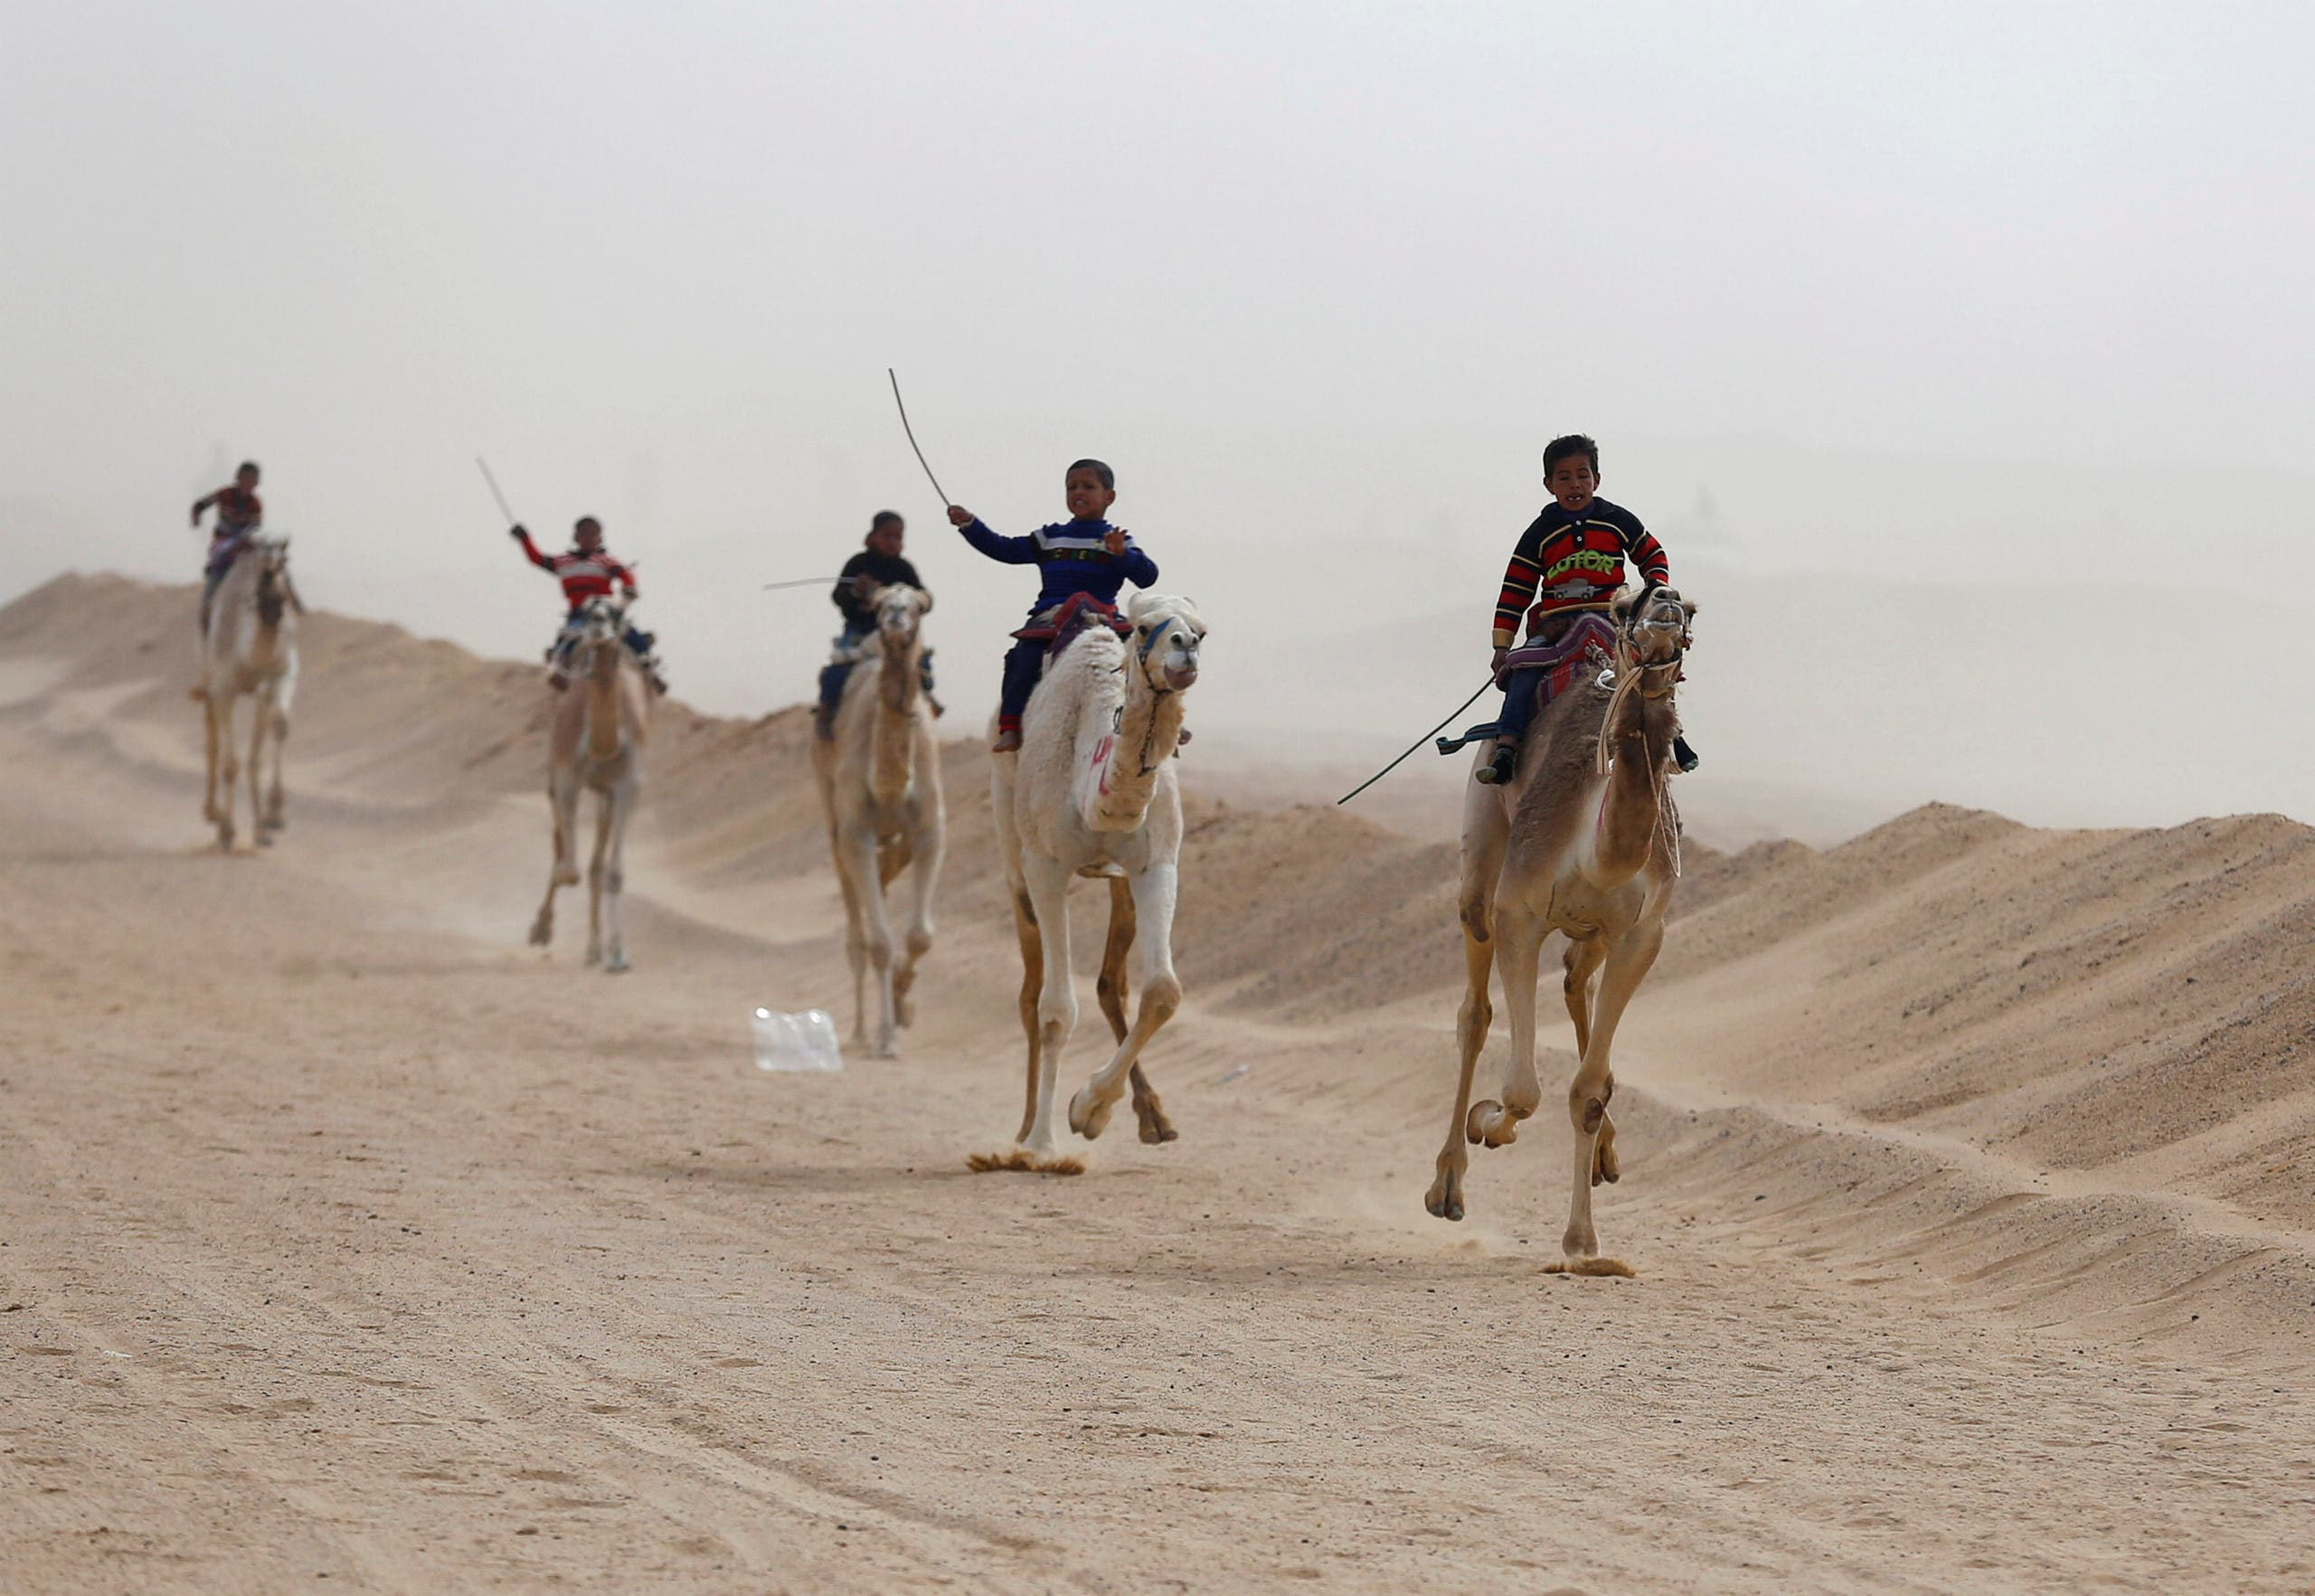 Jockeys, most of whom are children, compete on their mounts during the opening of the International Camel Racing festival at the Sarabium desert in Ismailia, Egypt, March 21, 2017. Picture taken March 21, 2017. reuters